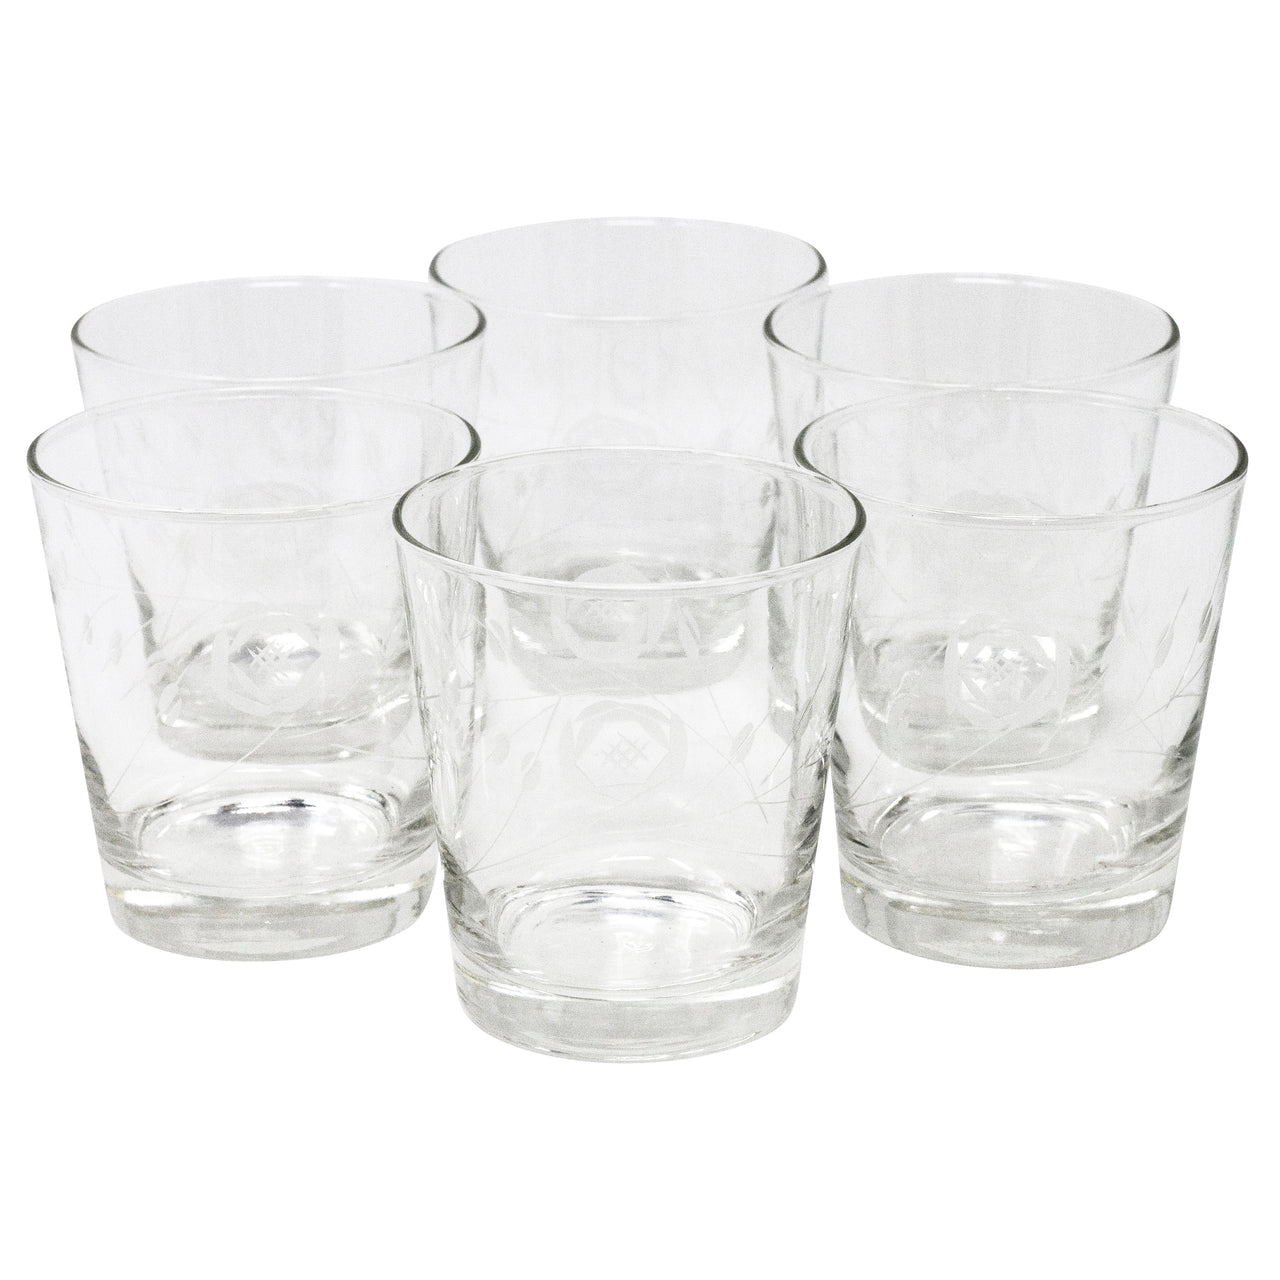 Vintage CG Quartex Etched Rose Rocks Glasses | The Hour